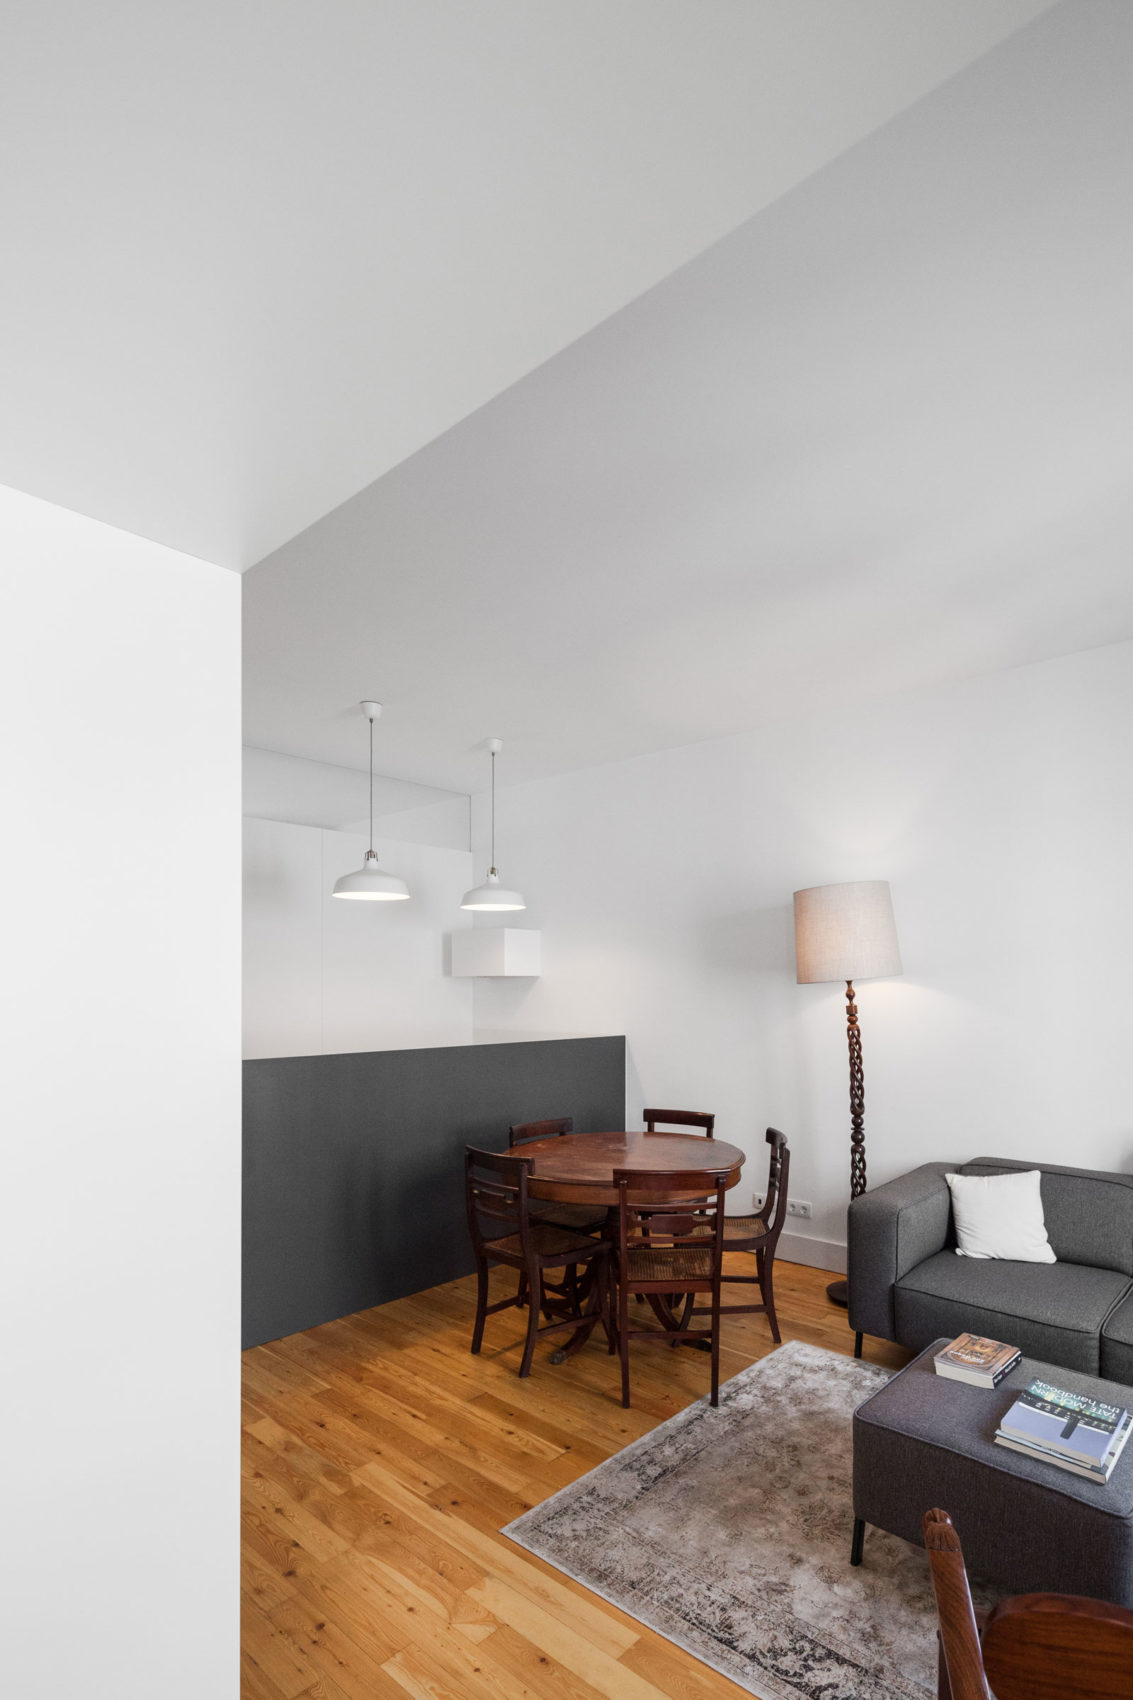 Apartment B9 by Filipe Melo Oliveira (4)